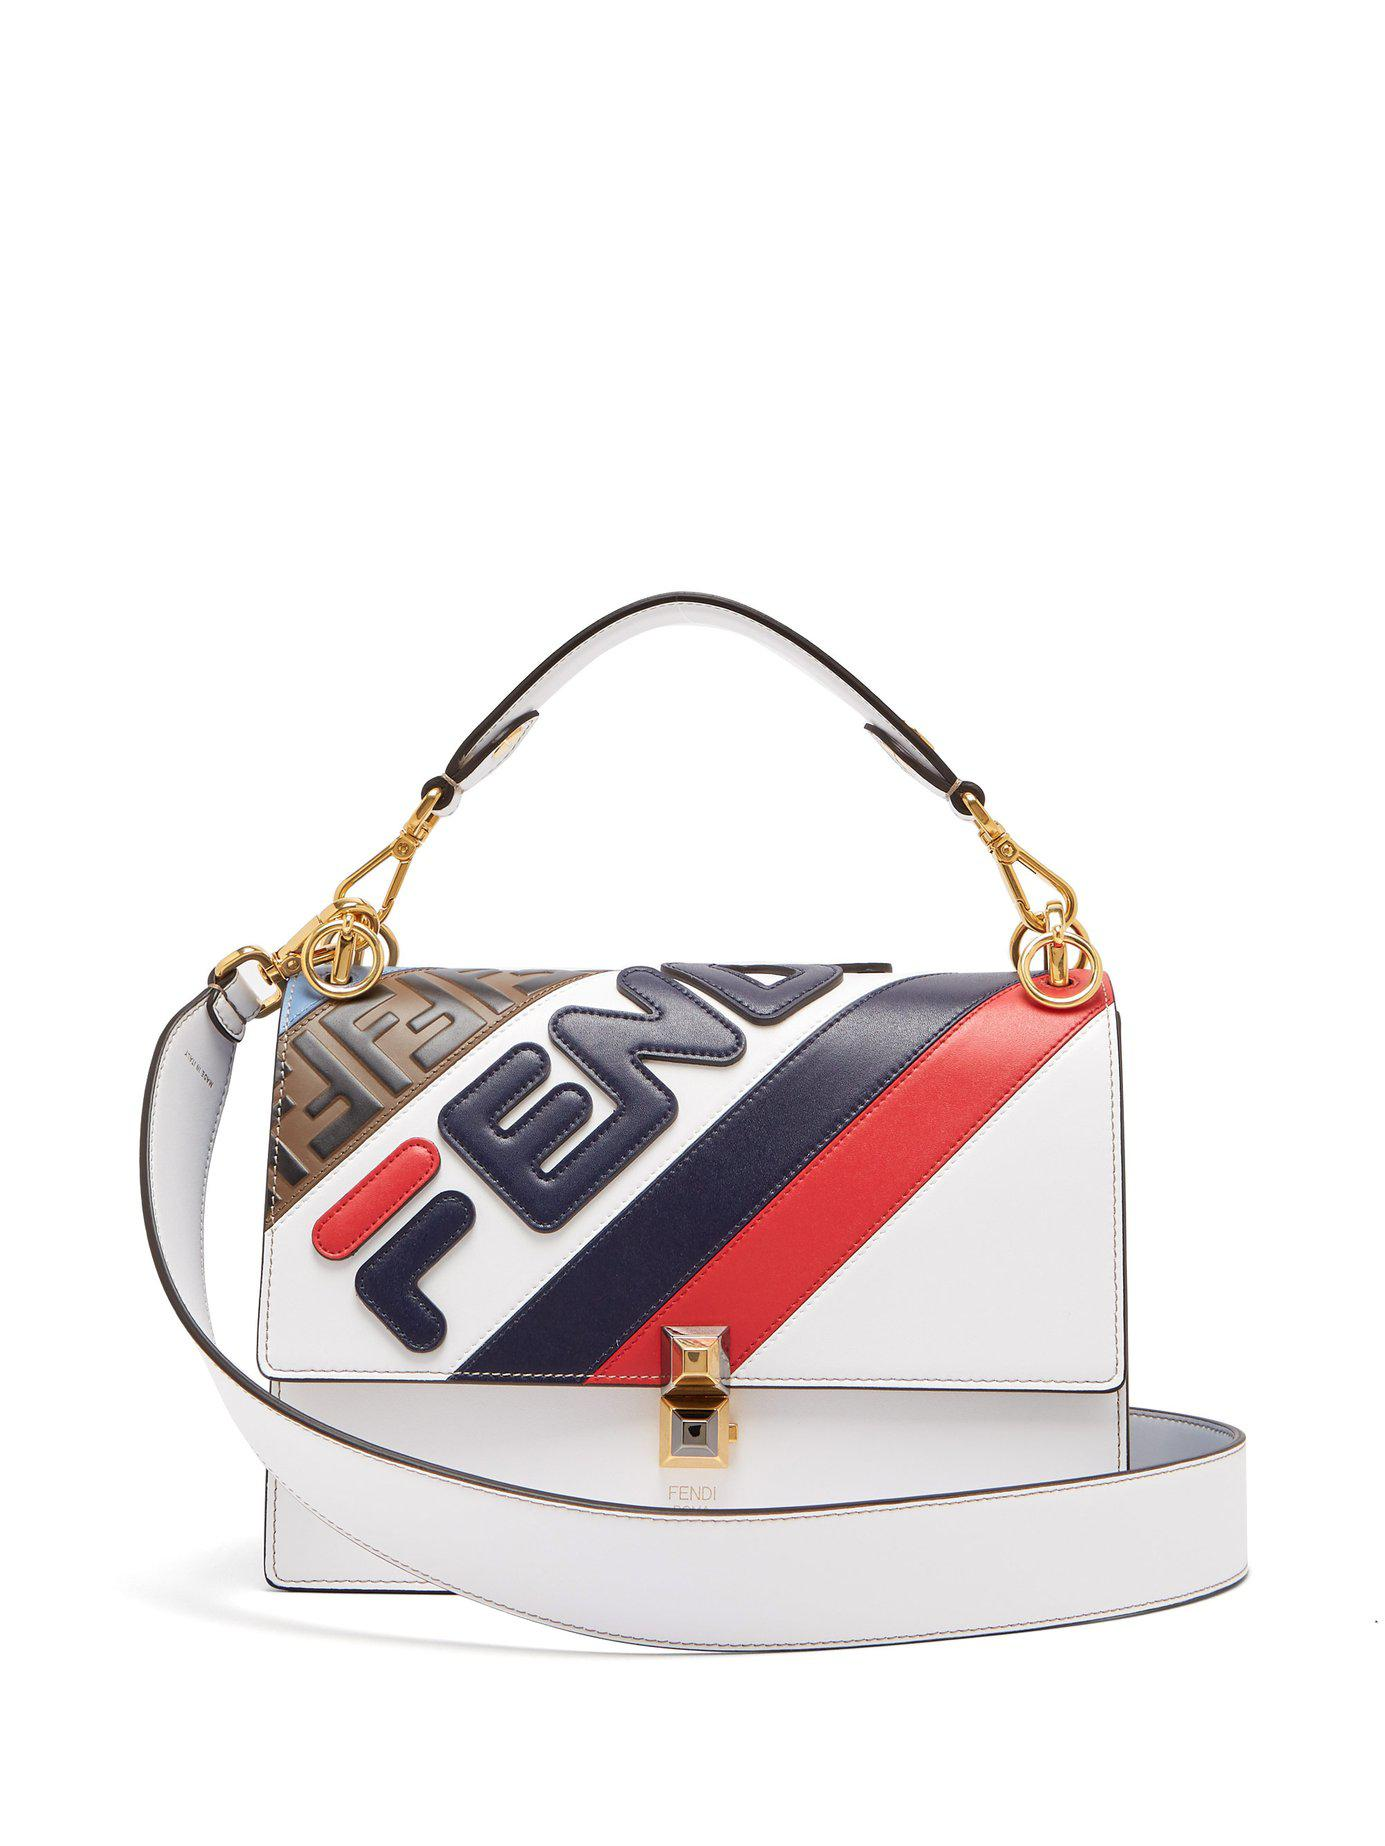 Fendi - White Kan I Appliquéd Leather Shoulder Bag - Lyst. View fullscreen 5ef291822a2b1